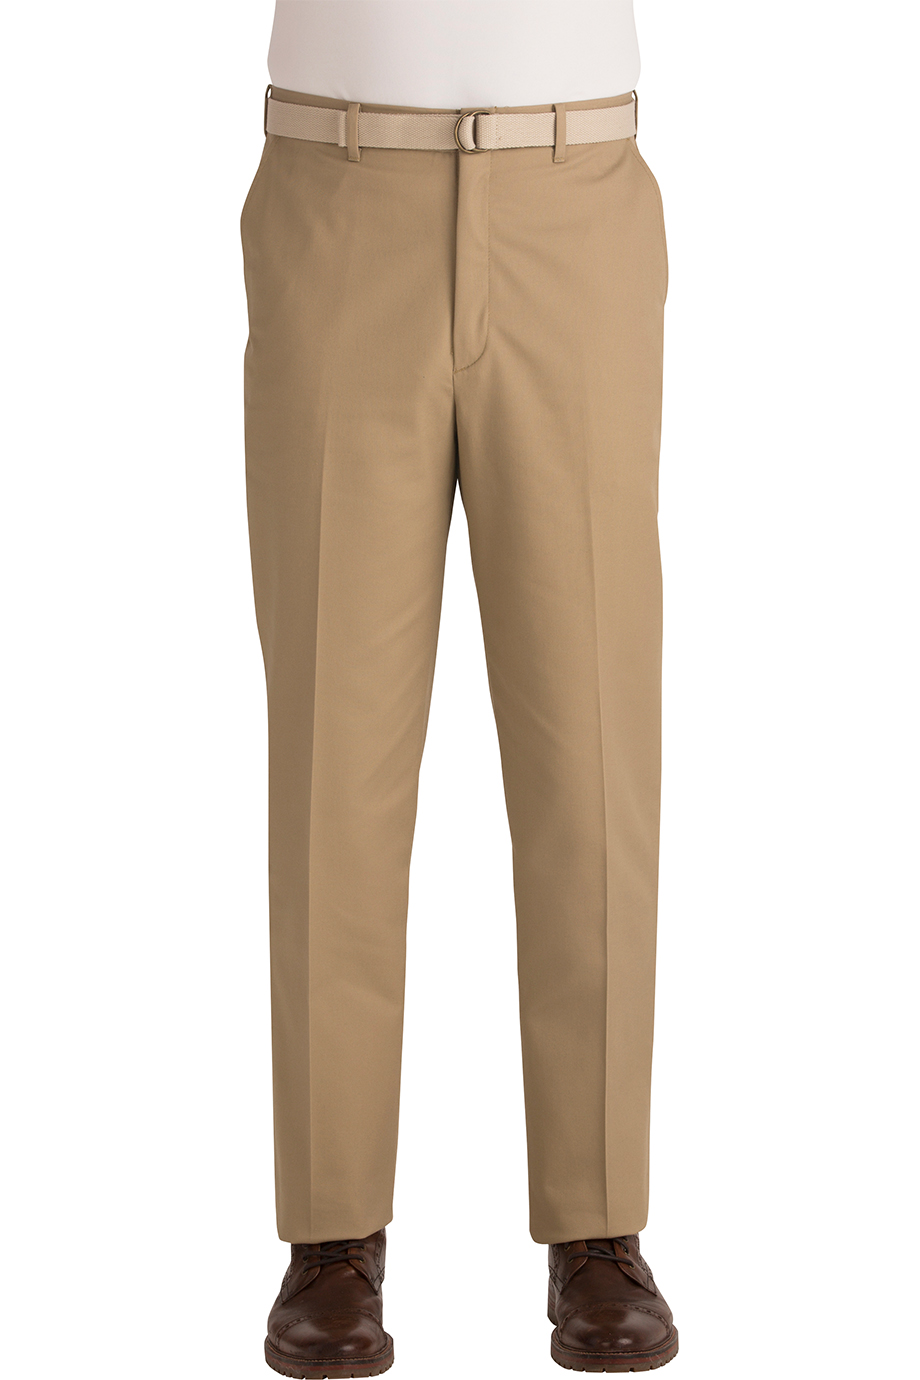 BUSINESS CHINO FLAT FRONT PANT